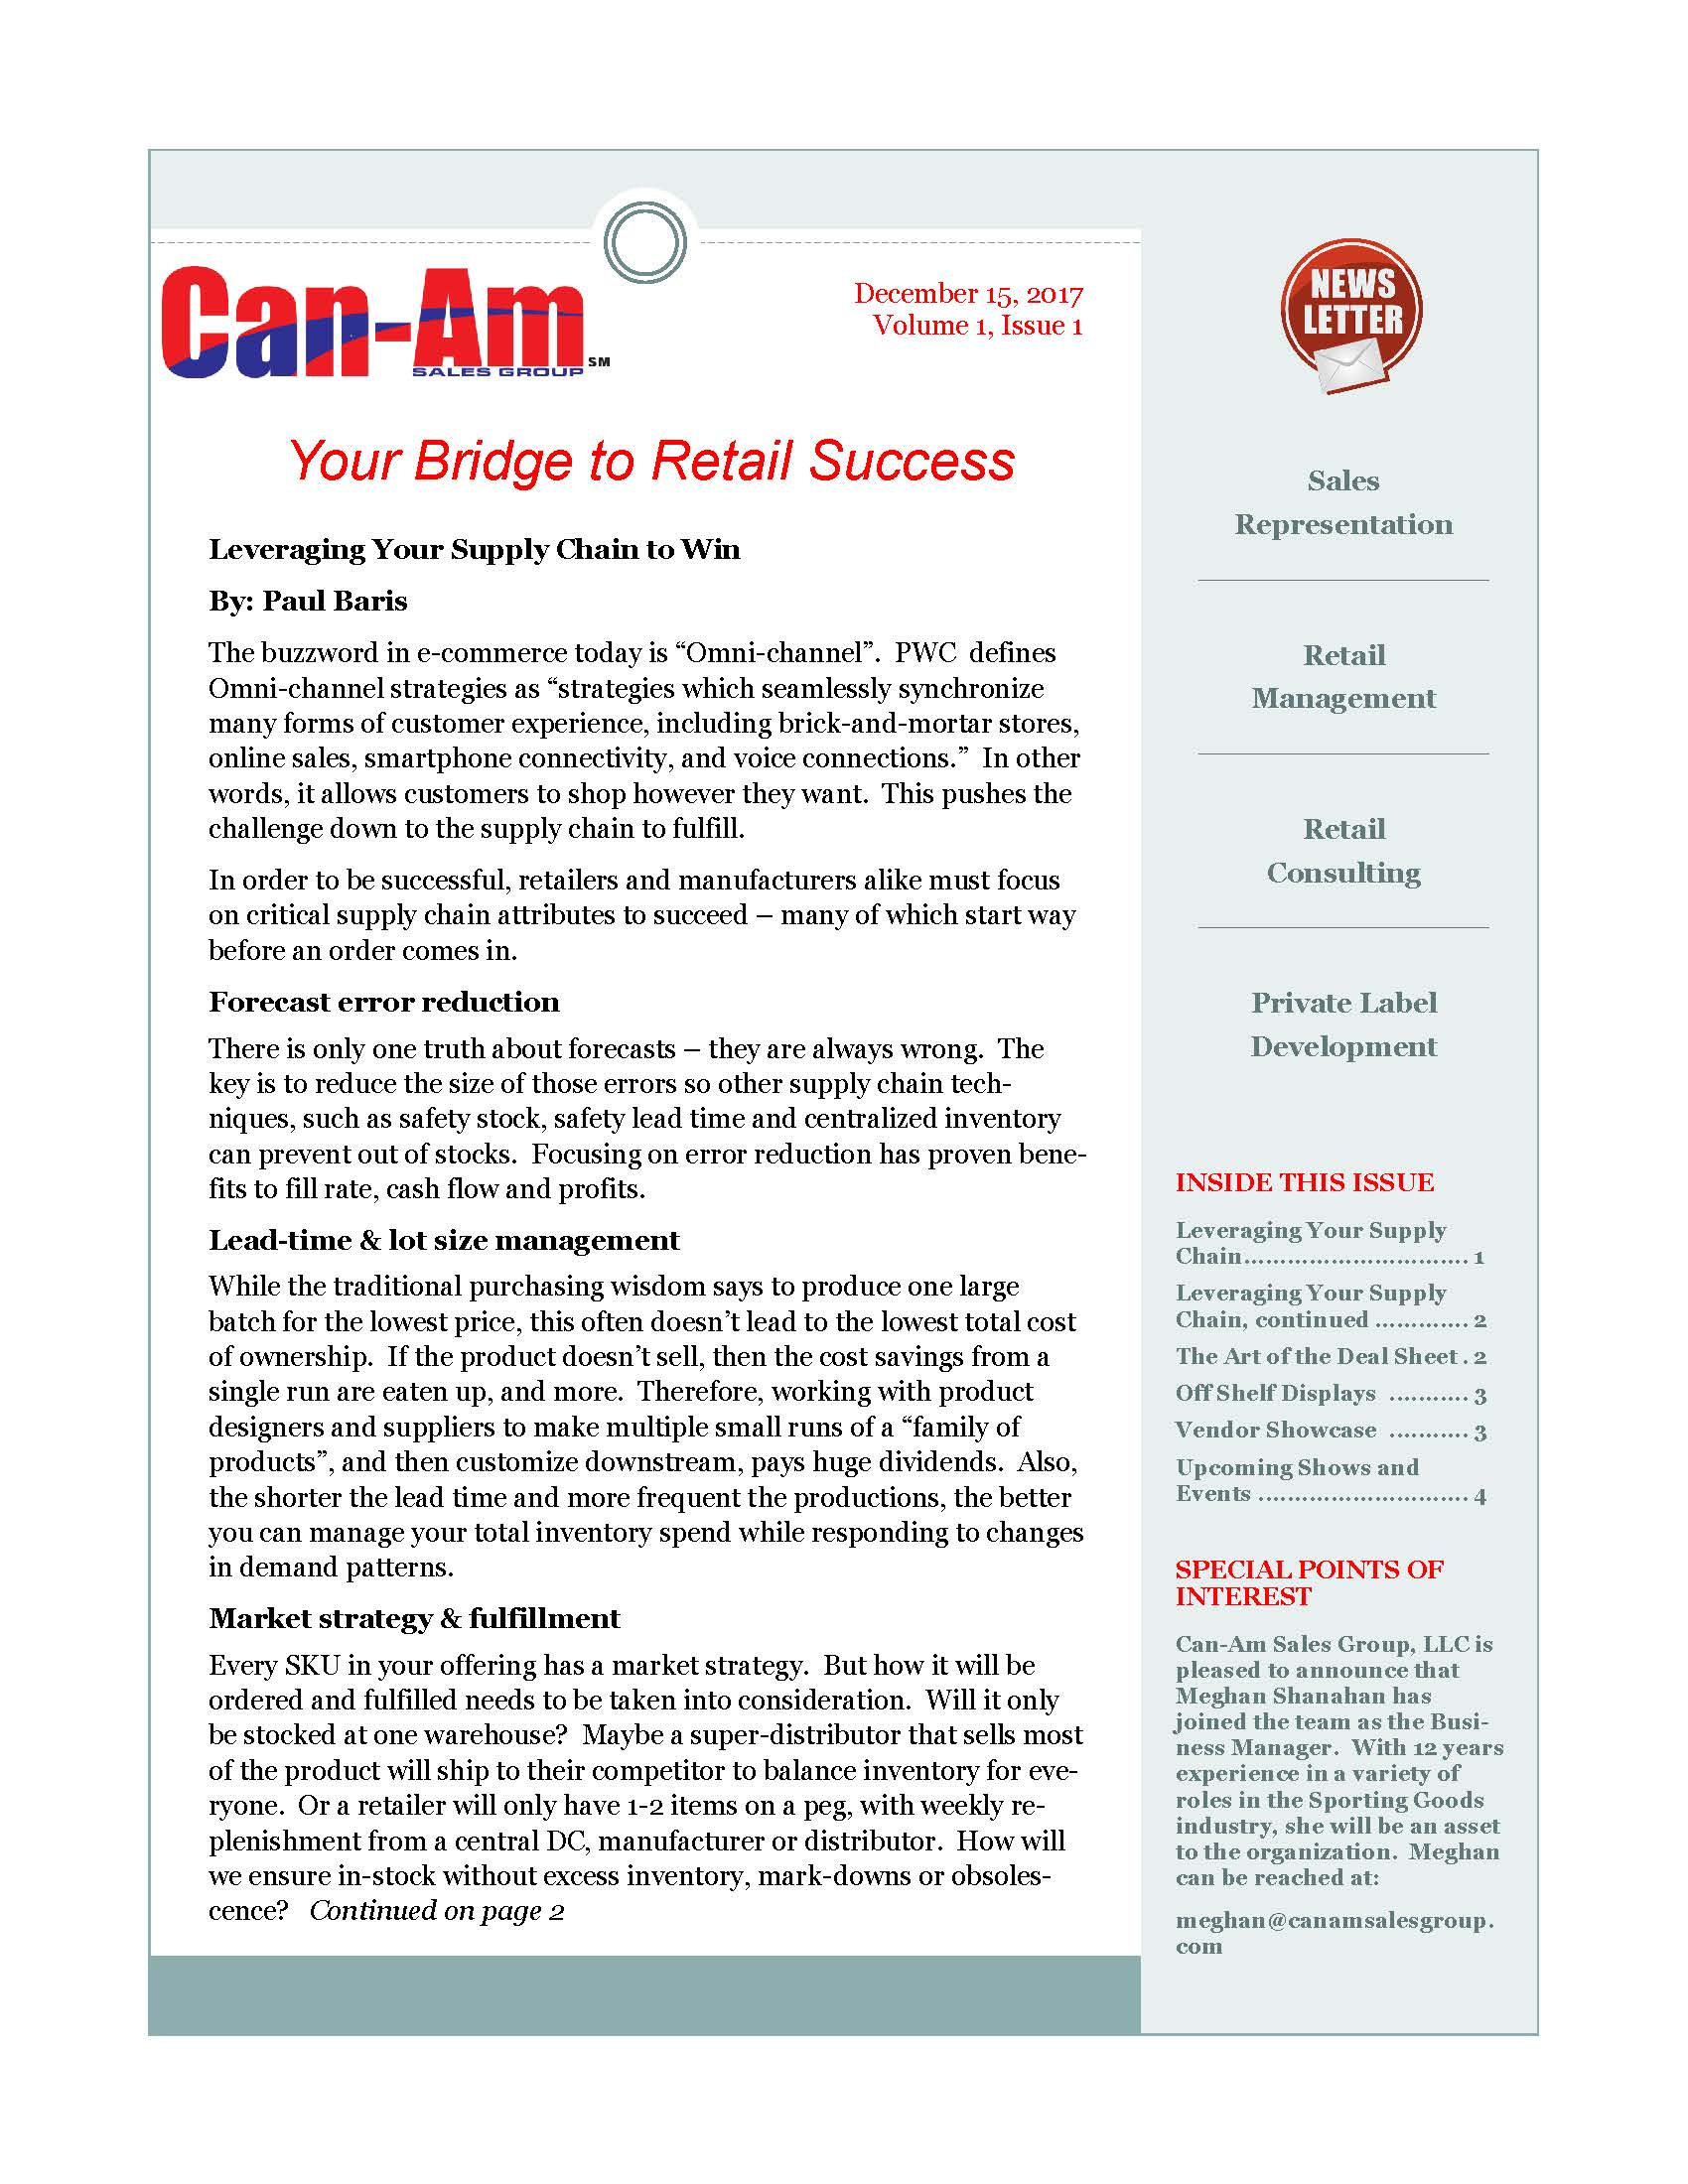 CanAm Newsletter Volume 1, Page 1